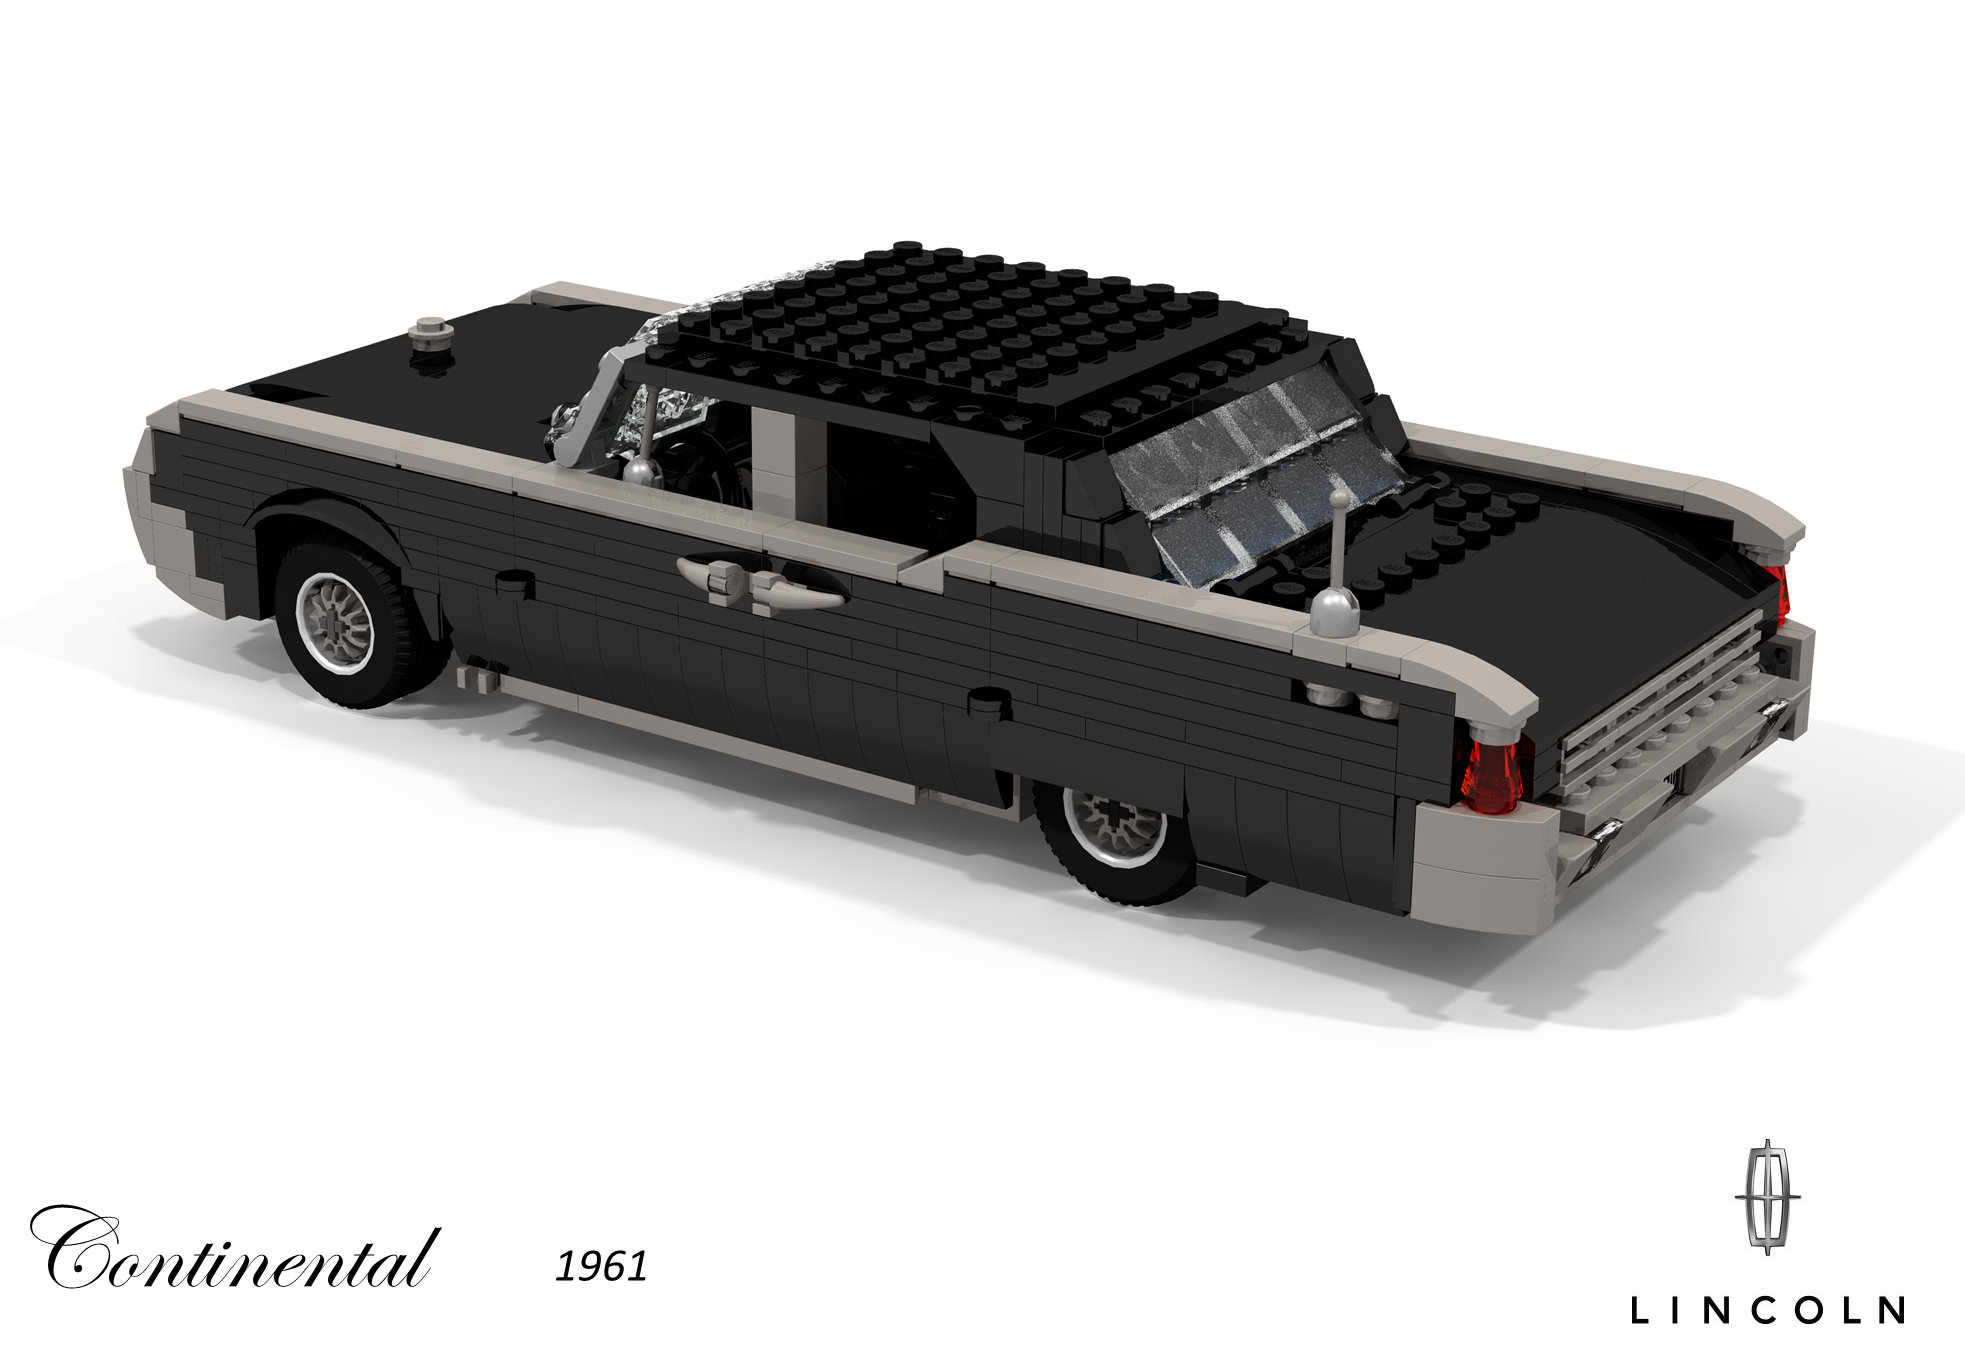 lincoln_1961_continental_02.png